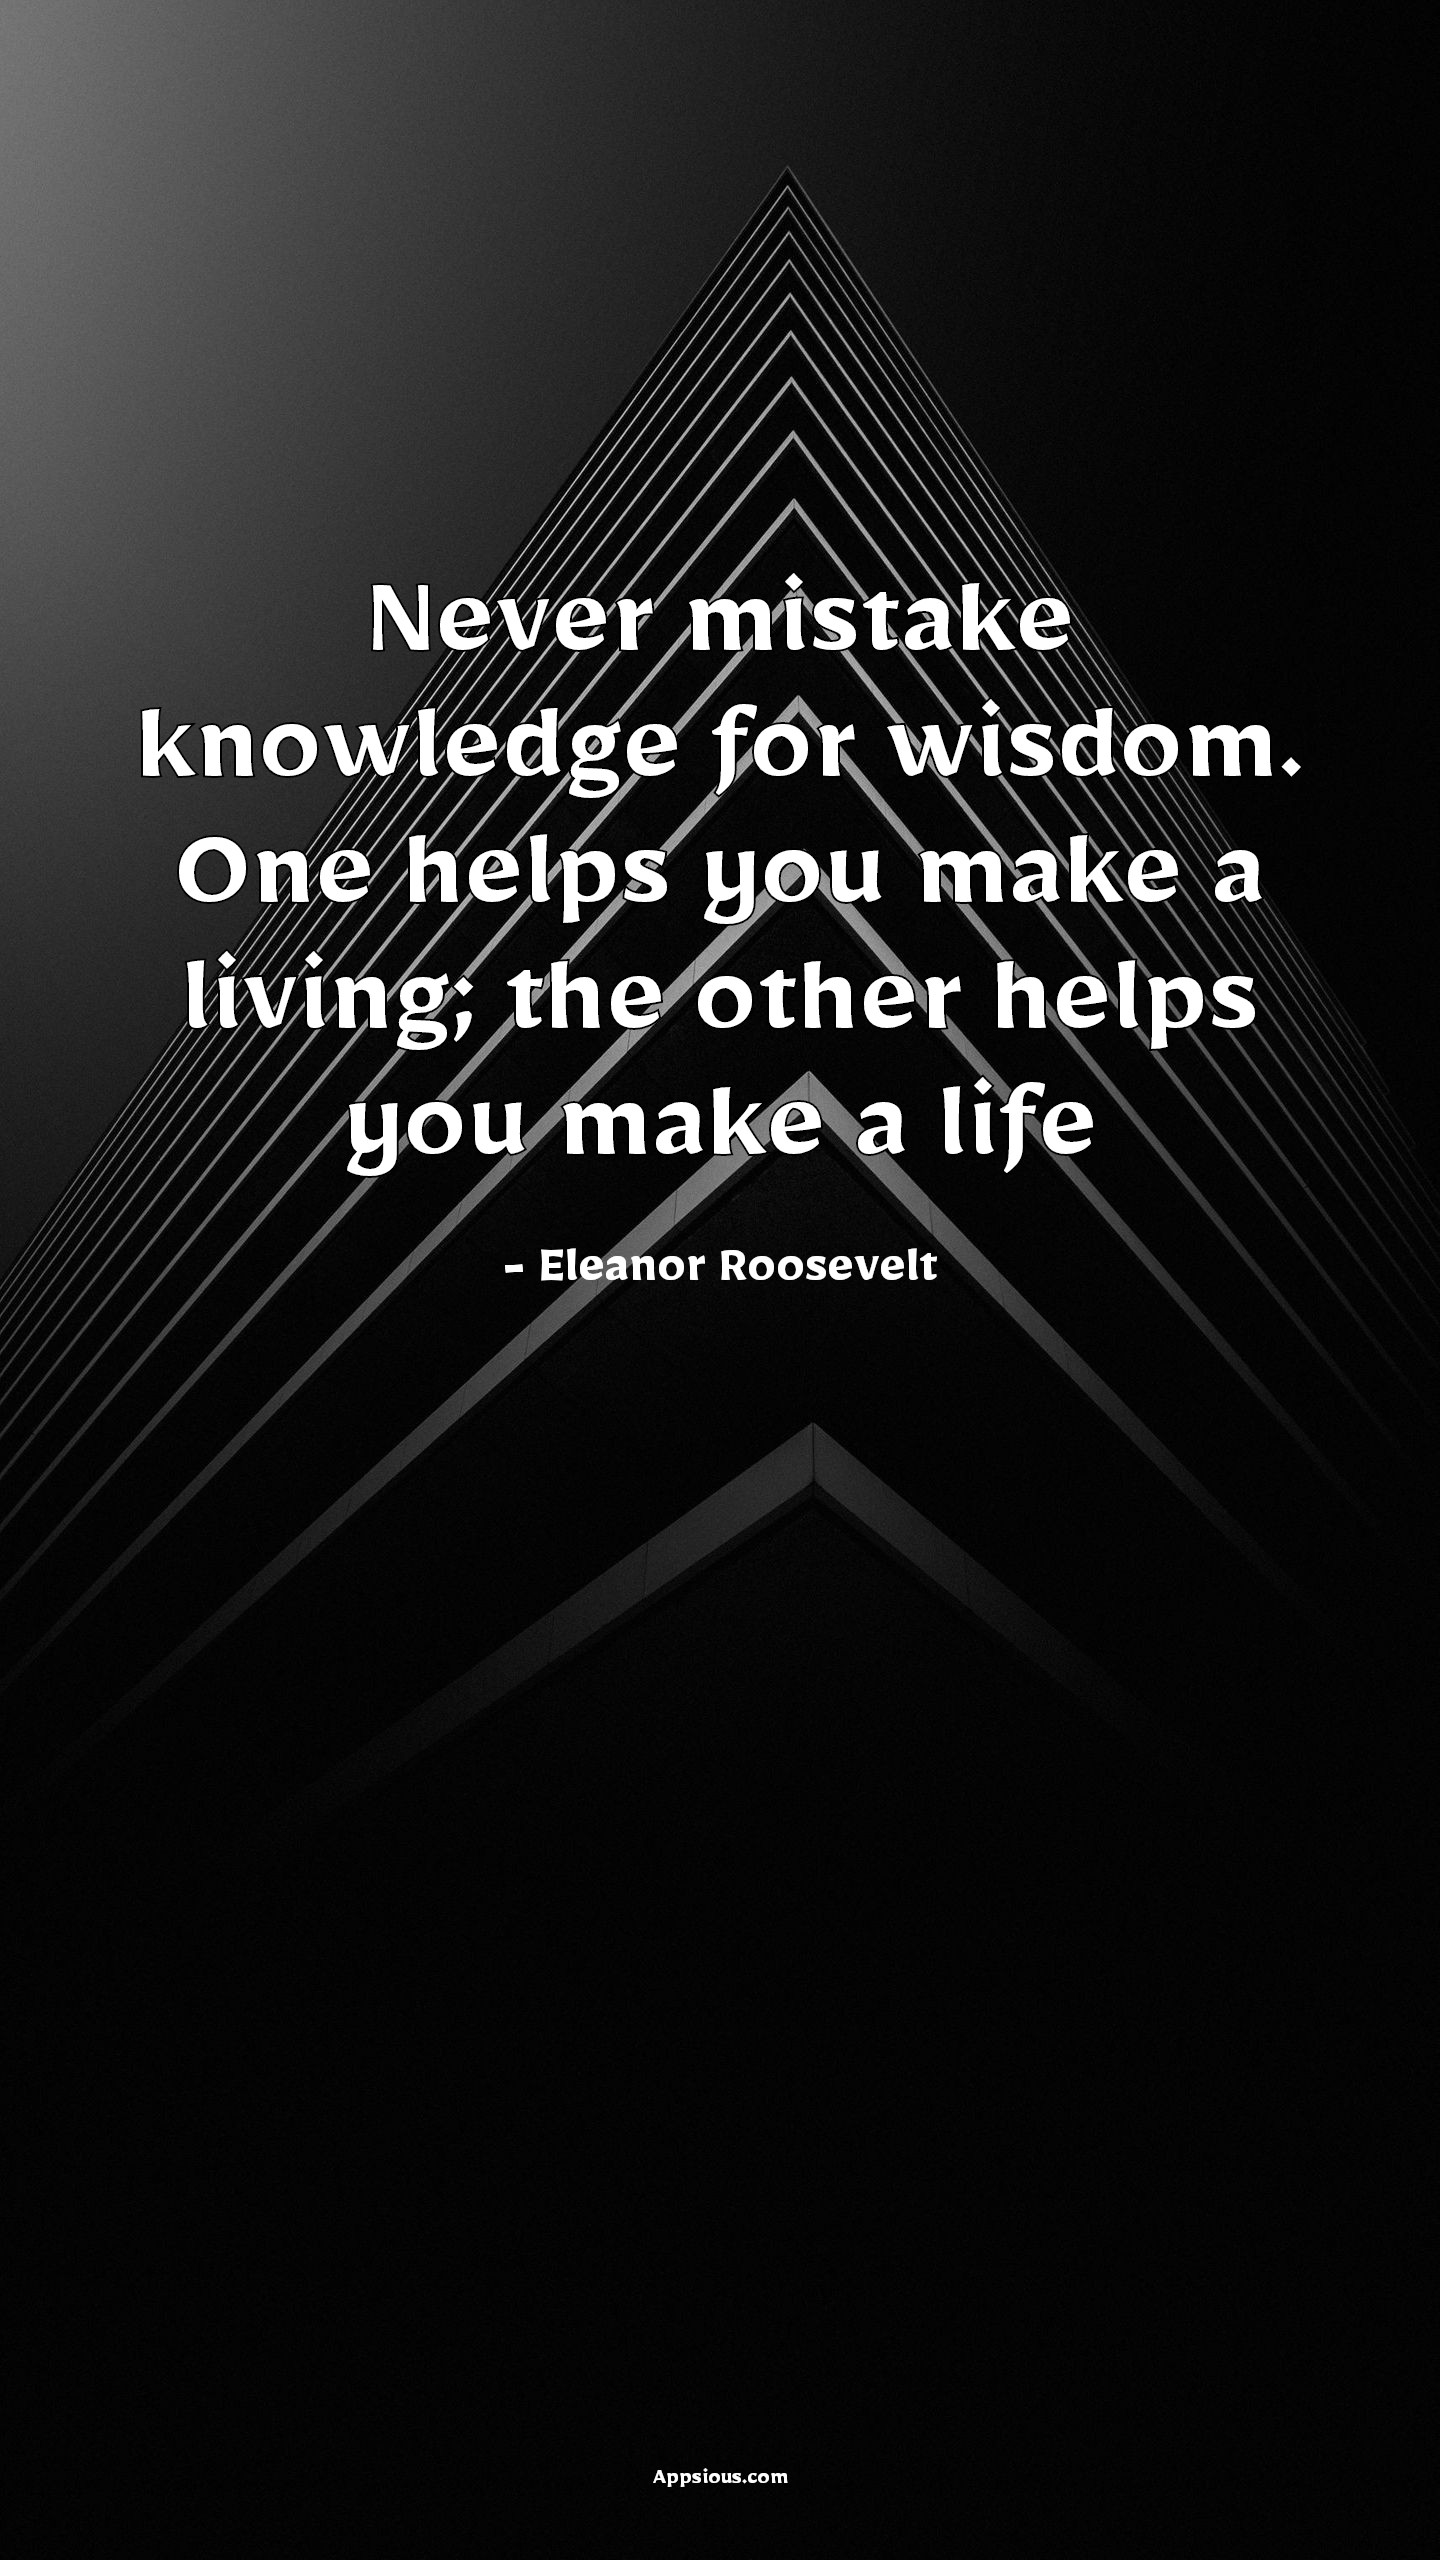 Never mistake knowledge for wisdom. One helps you make a living; the other helps you make a life